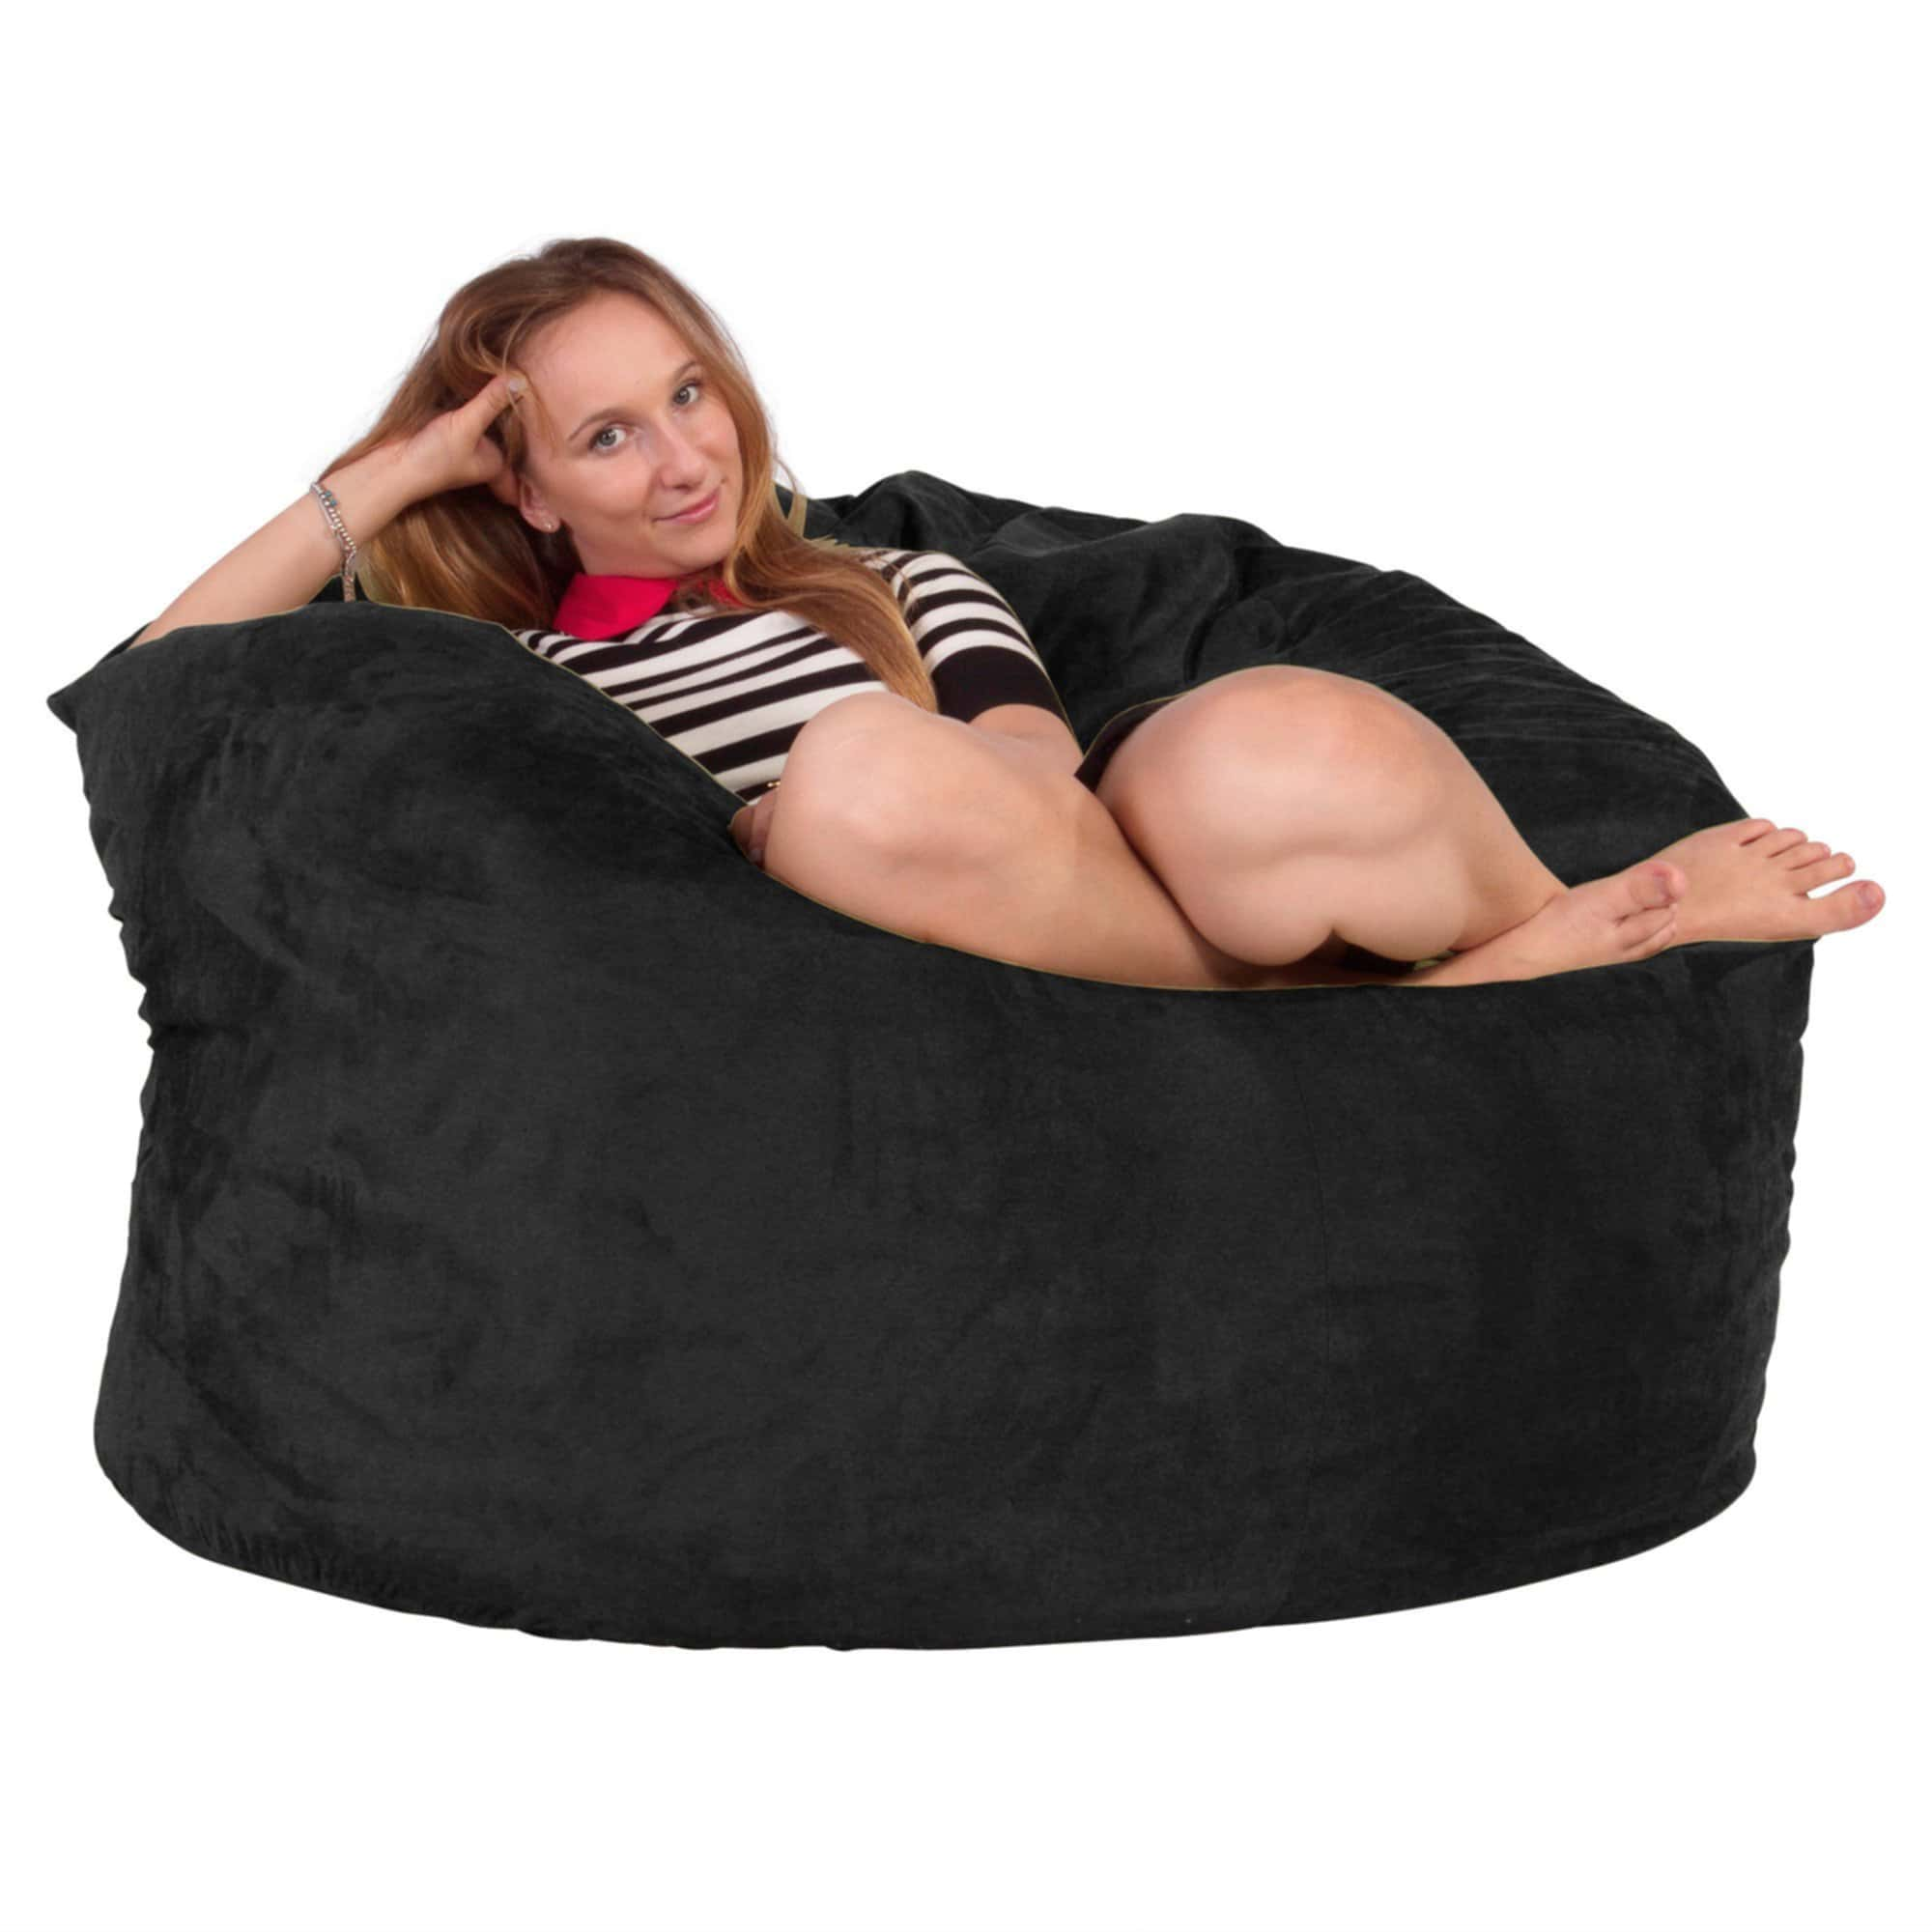 Lounge Memory Foam Bean Bag